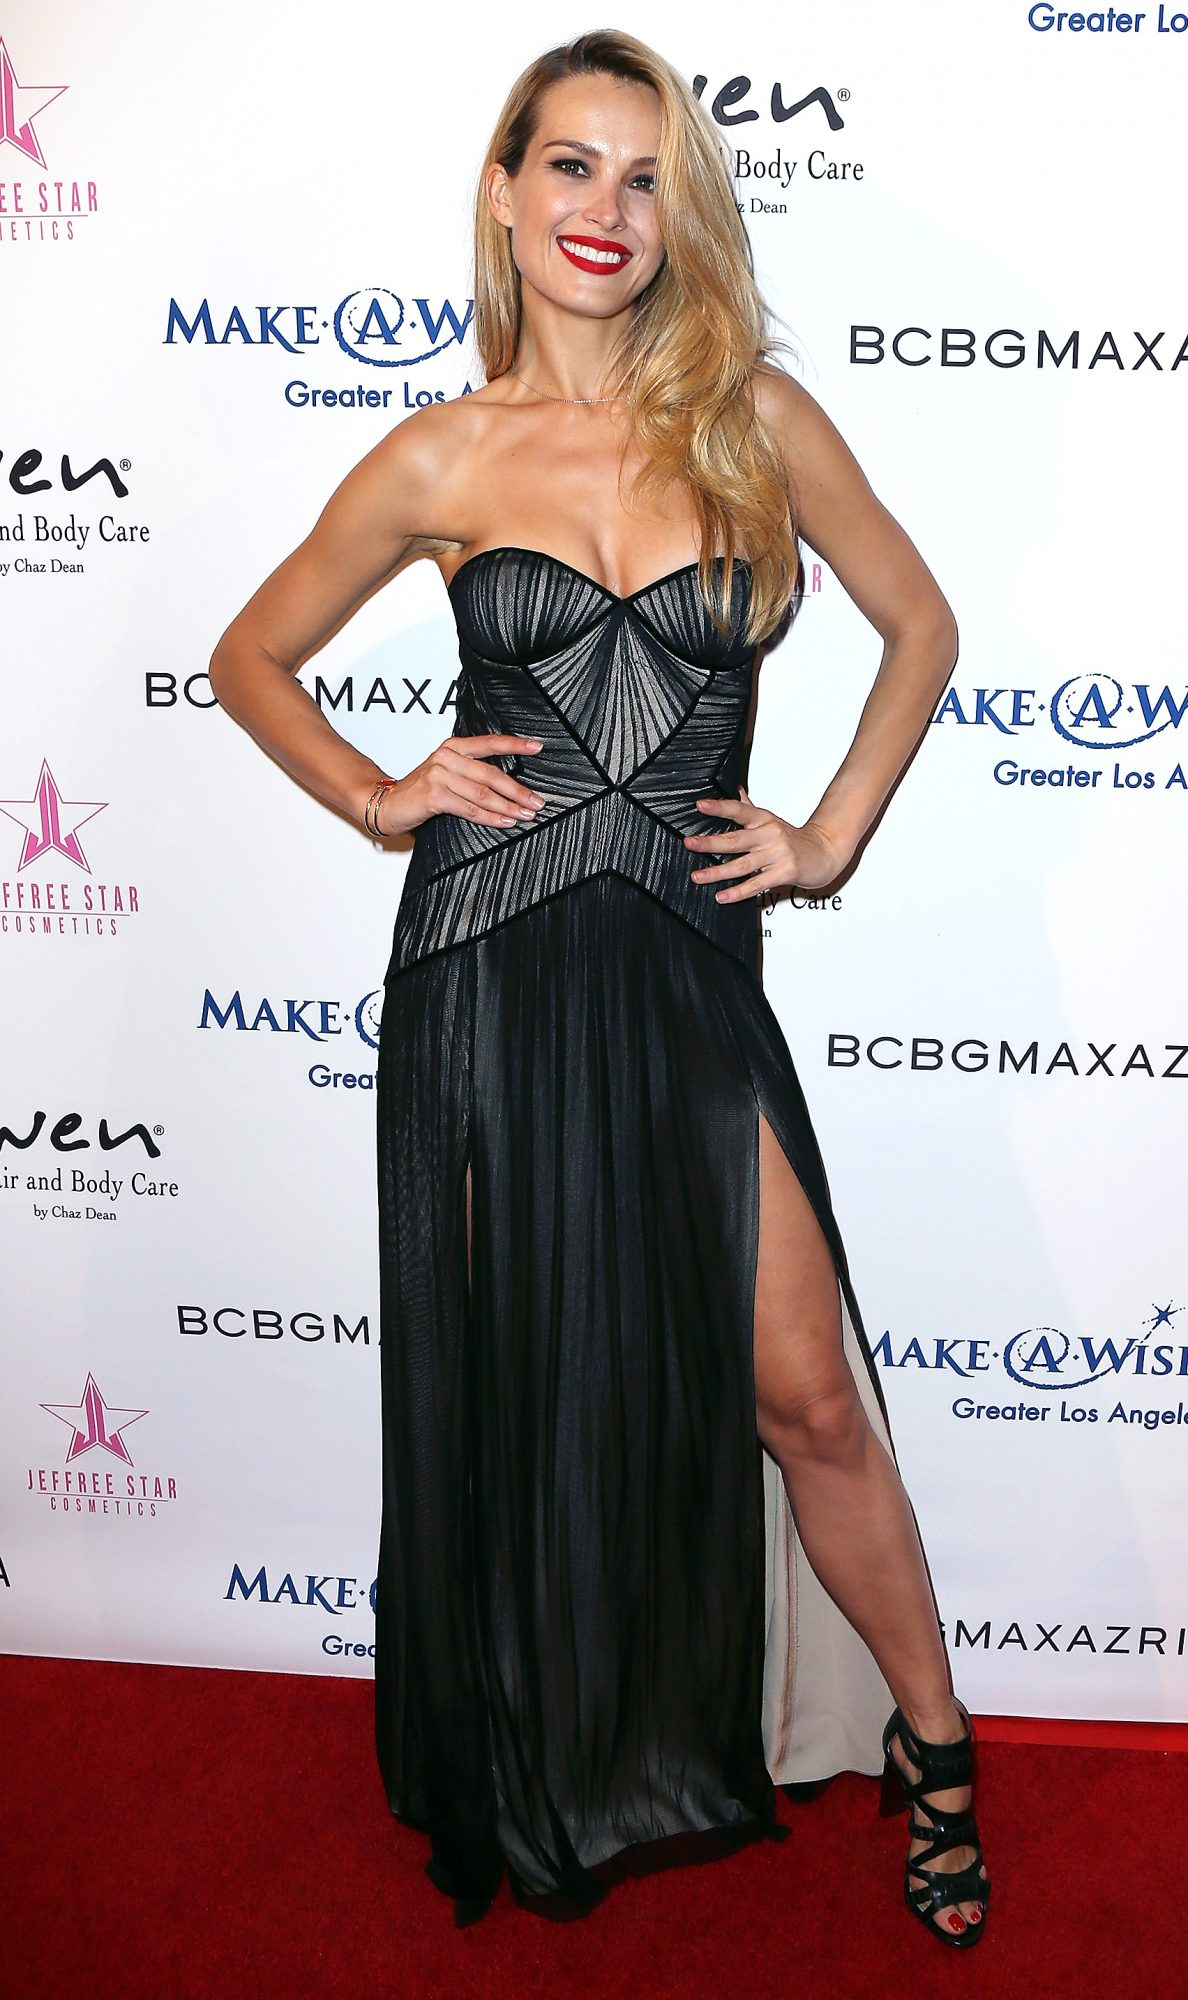 Make-A-Wish Greater Los Angeles Fashion Fundraiser - Arrivals